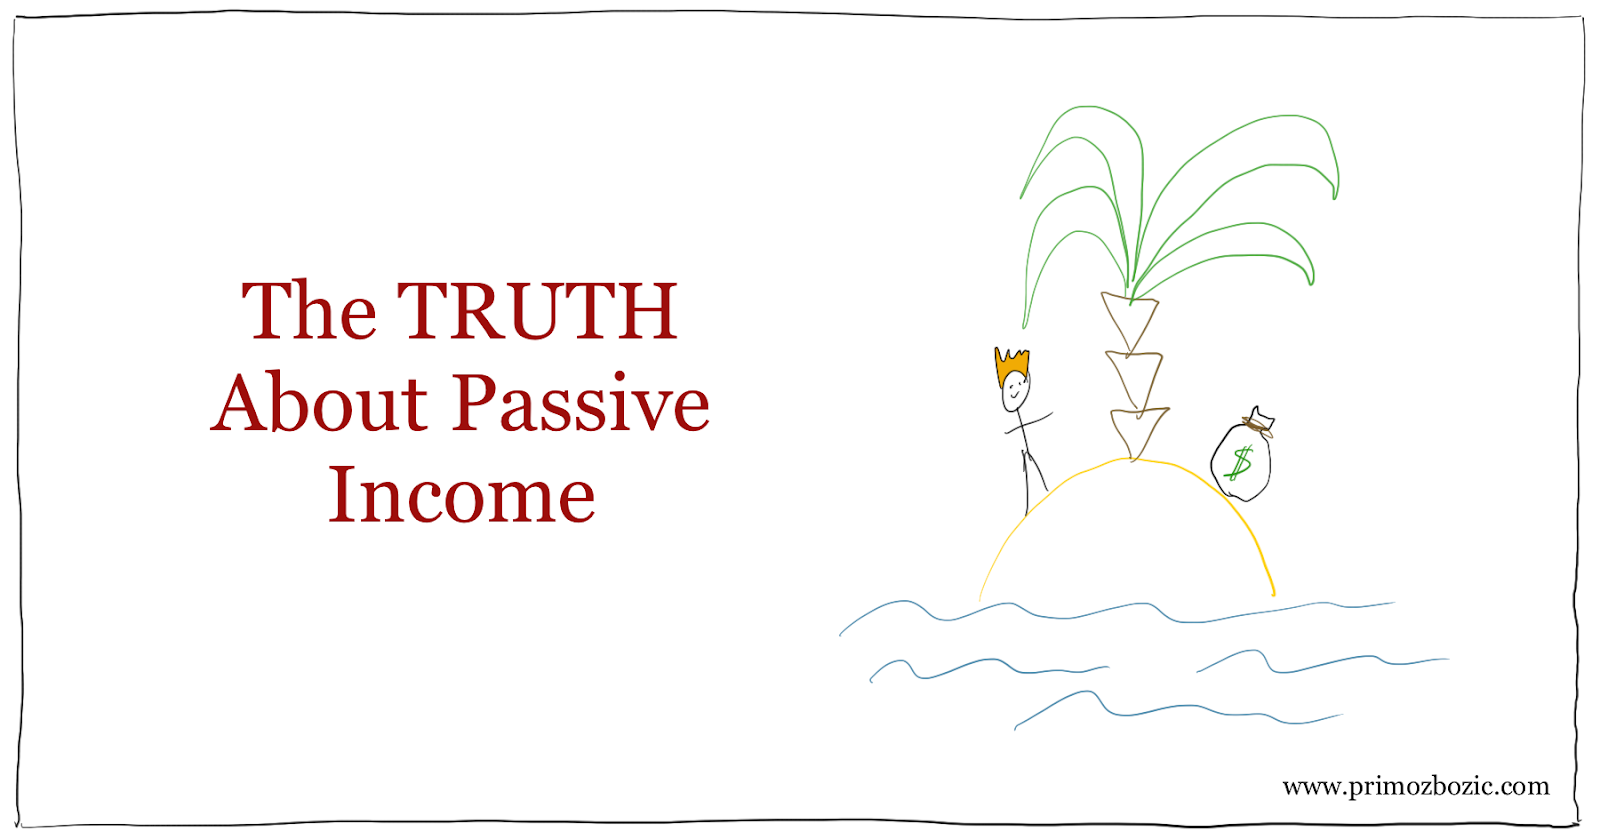 The truth about passive income